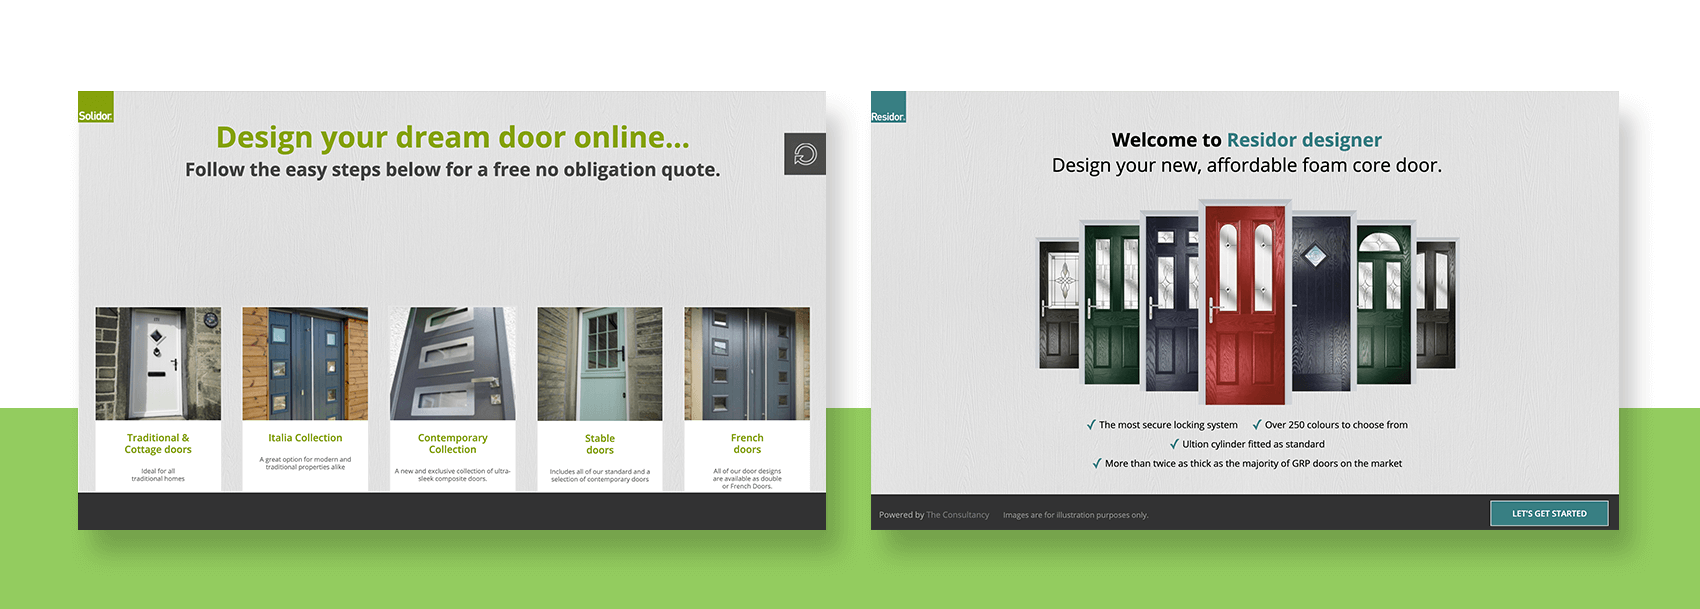 Preview images of the Solidor and Residor online door designers